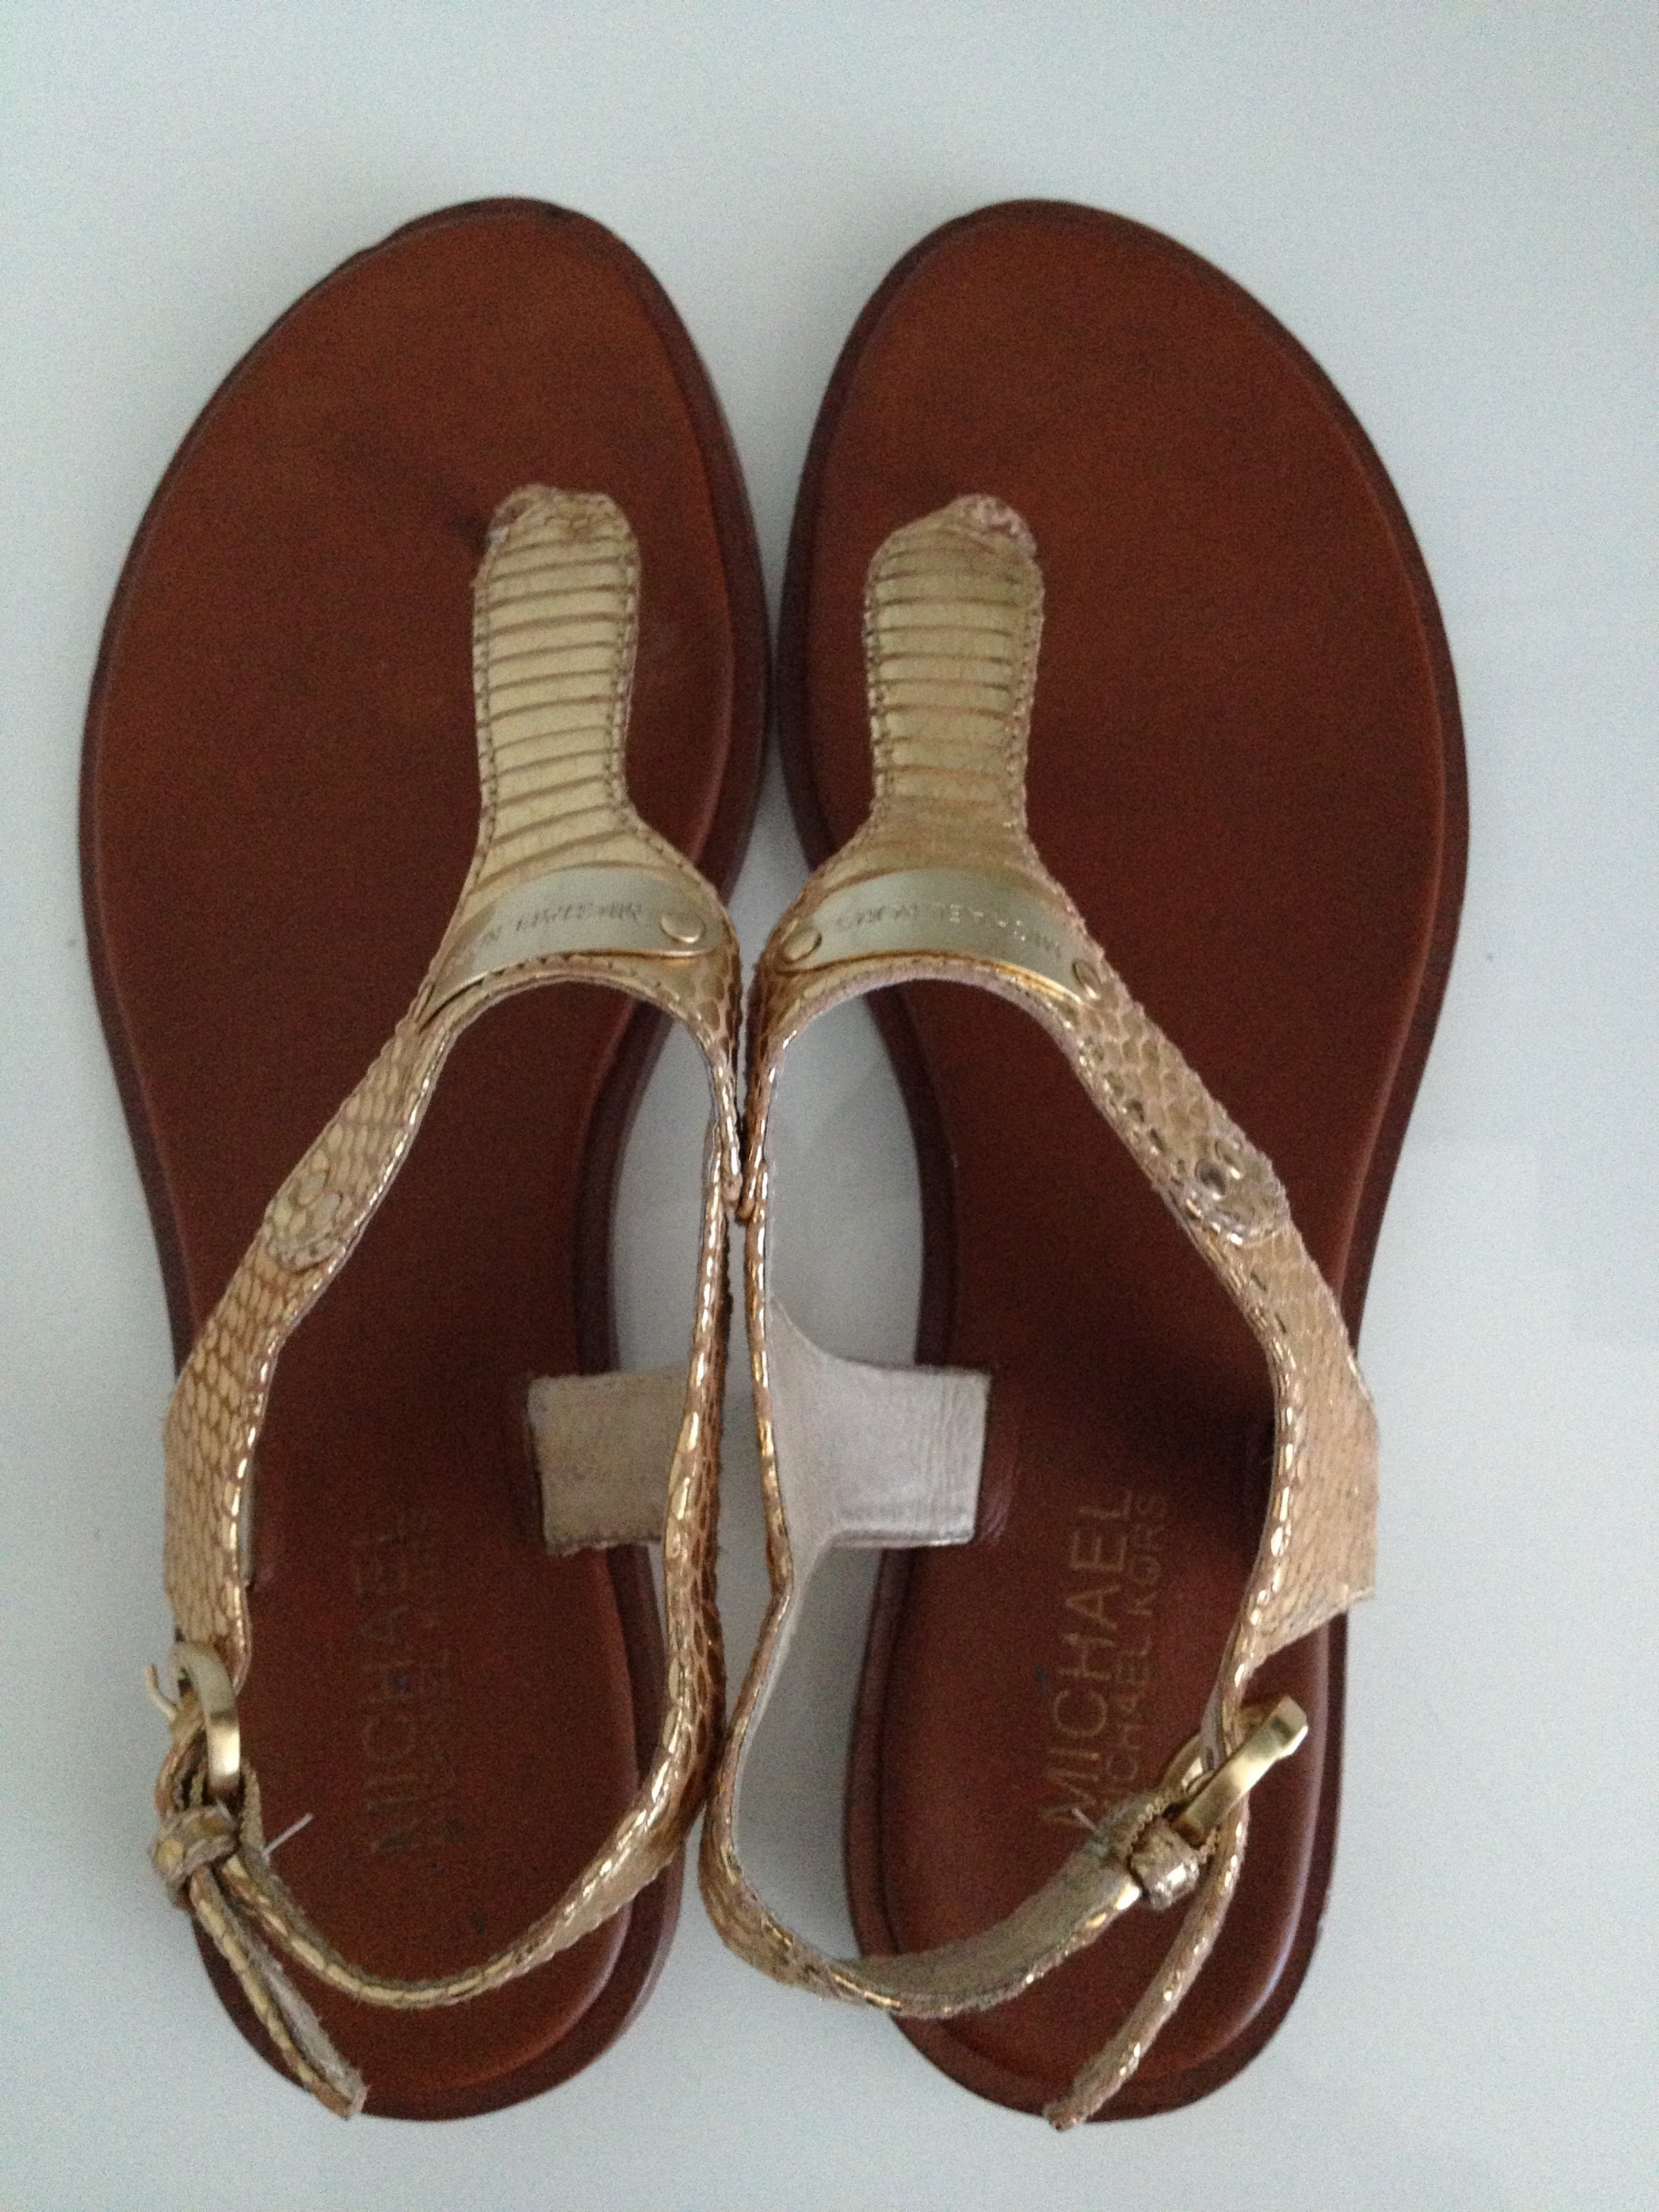 9f209e43e355 Buy michael kors gold sandals   OFF40% Discounted